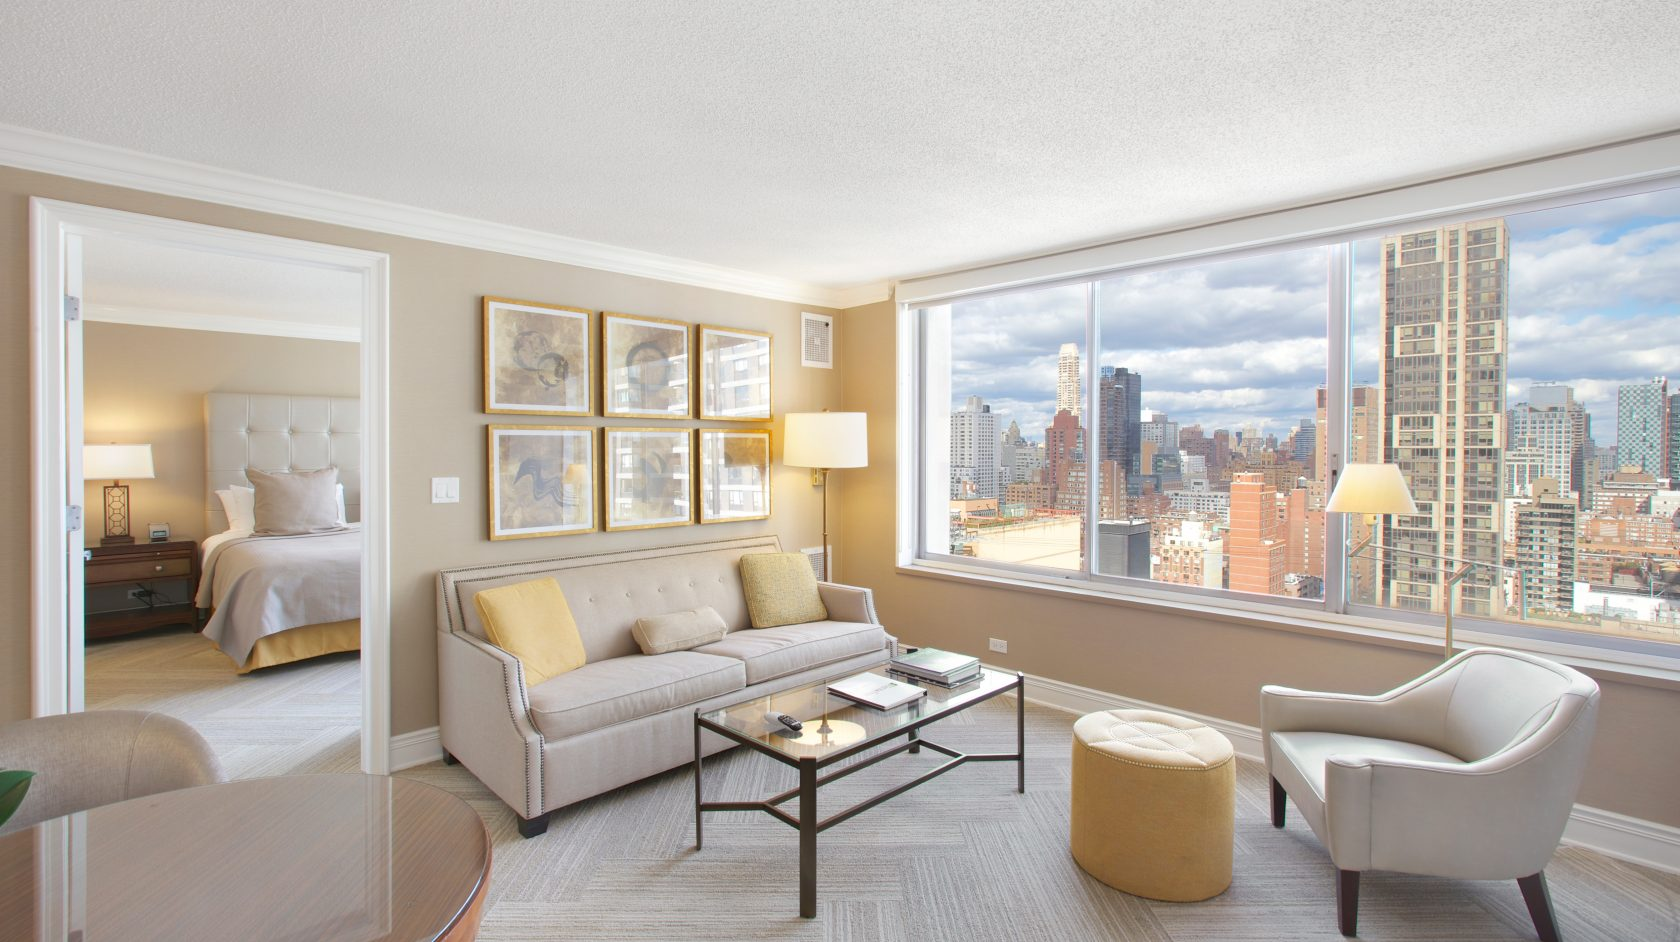 sutton court bedroom with amazing view of nyc